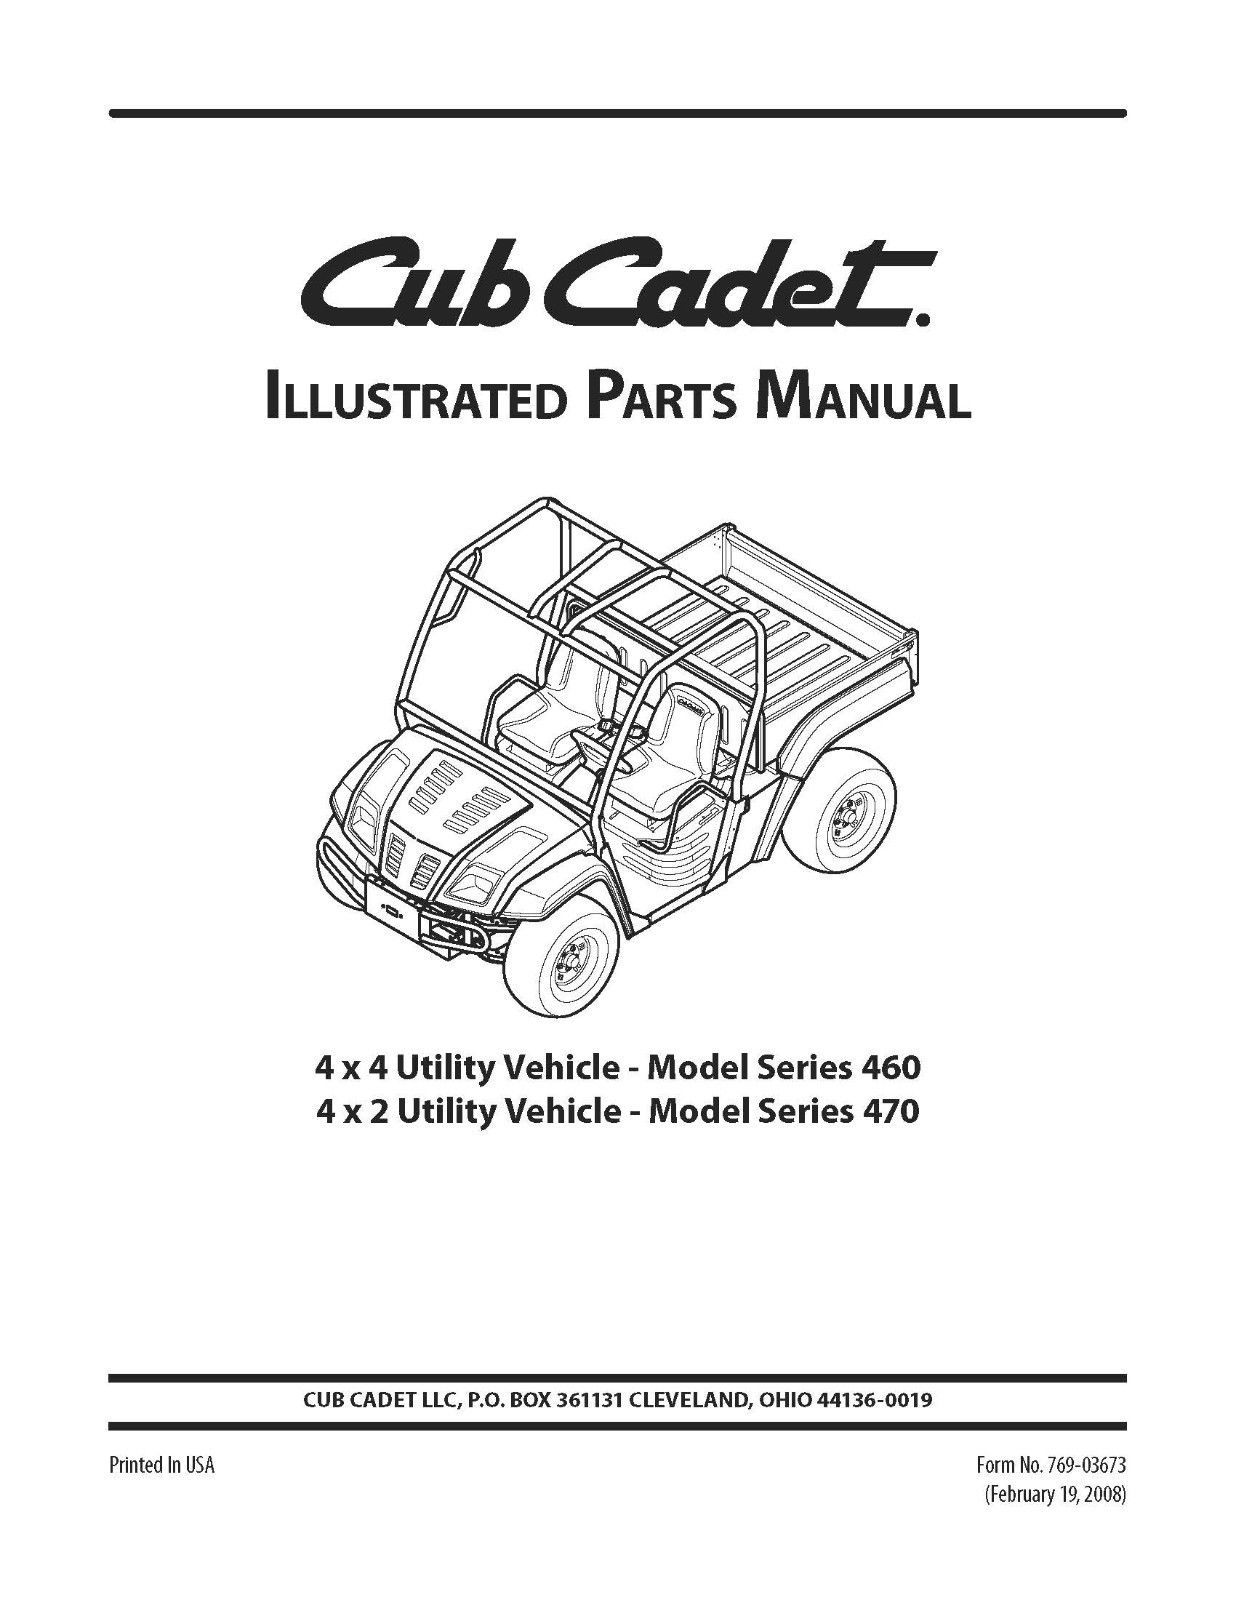 Cub Cadet 4x4 & 4 x 2 Utility Parts Manual Model No. 460-470